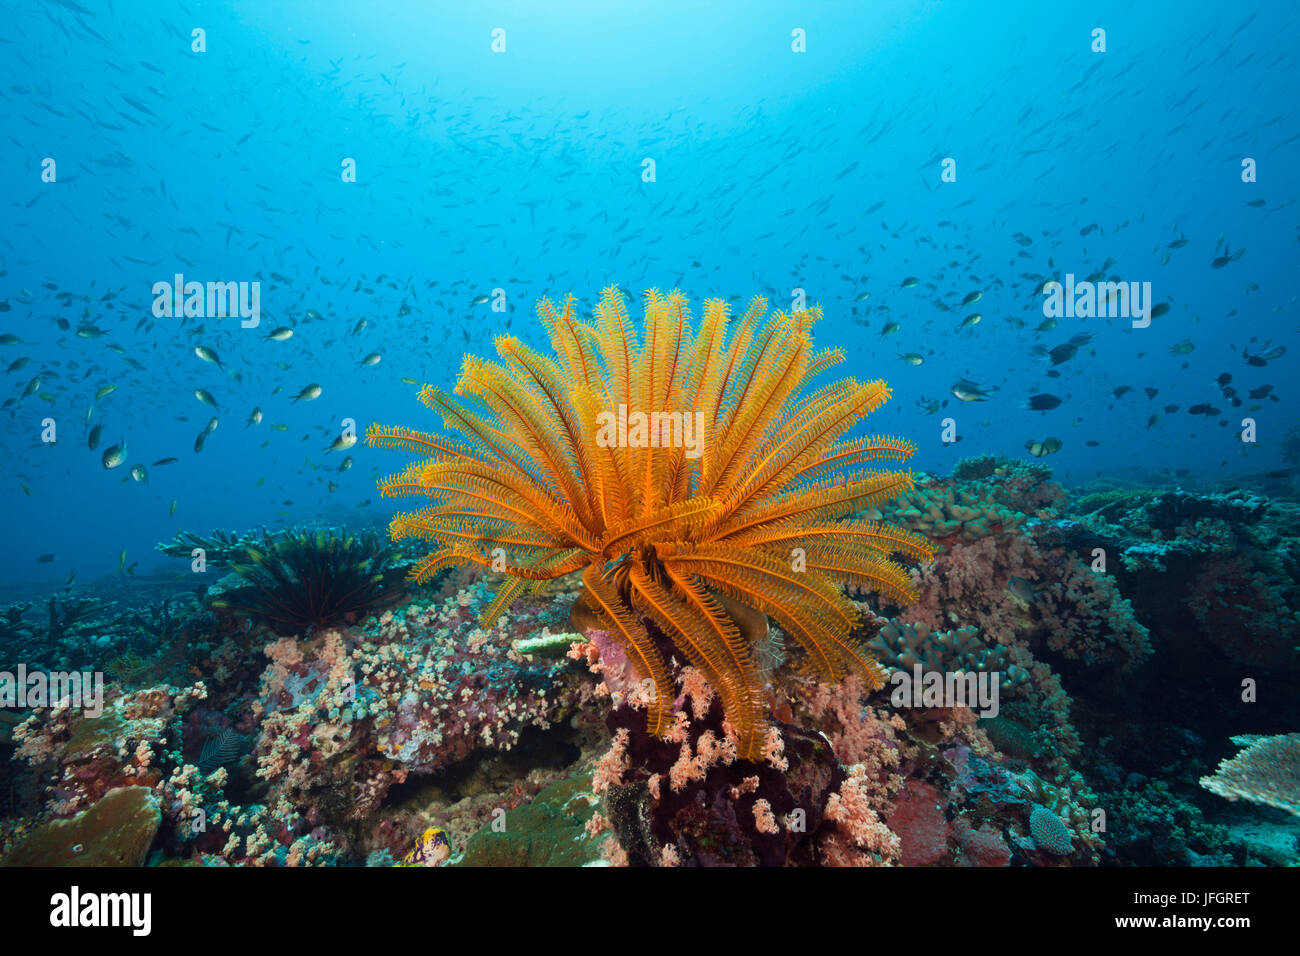 Coral reef with feather star, Florida Islands, the Solomon Islands - Stock Image